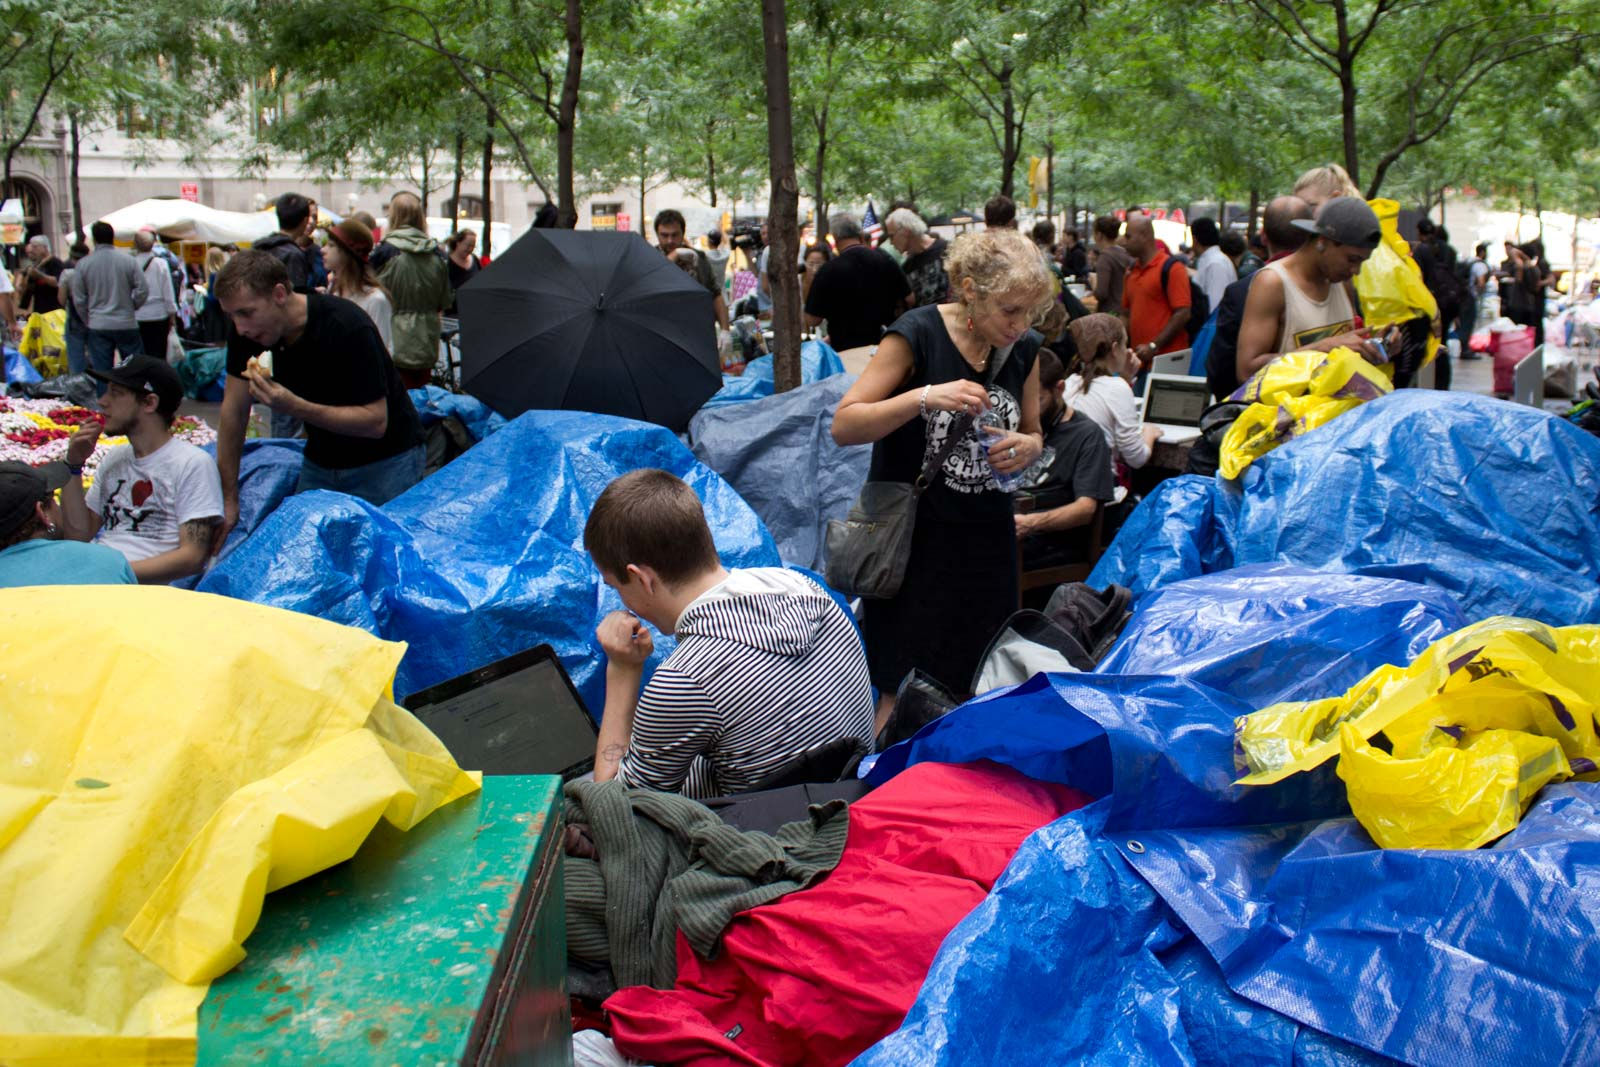 Occupy Wall St New York